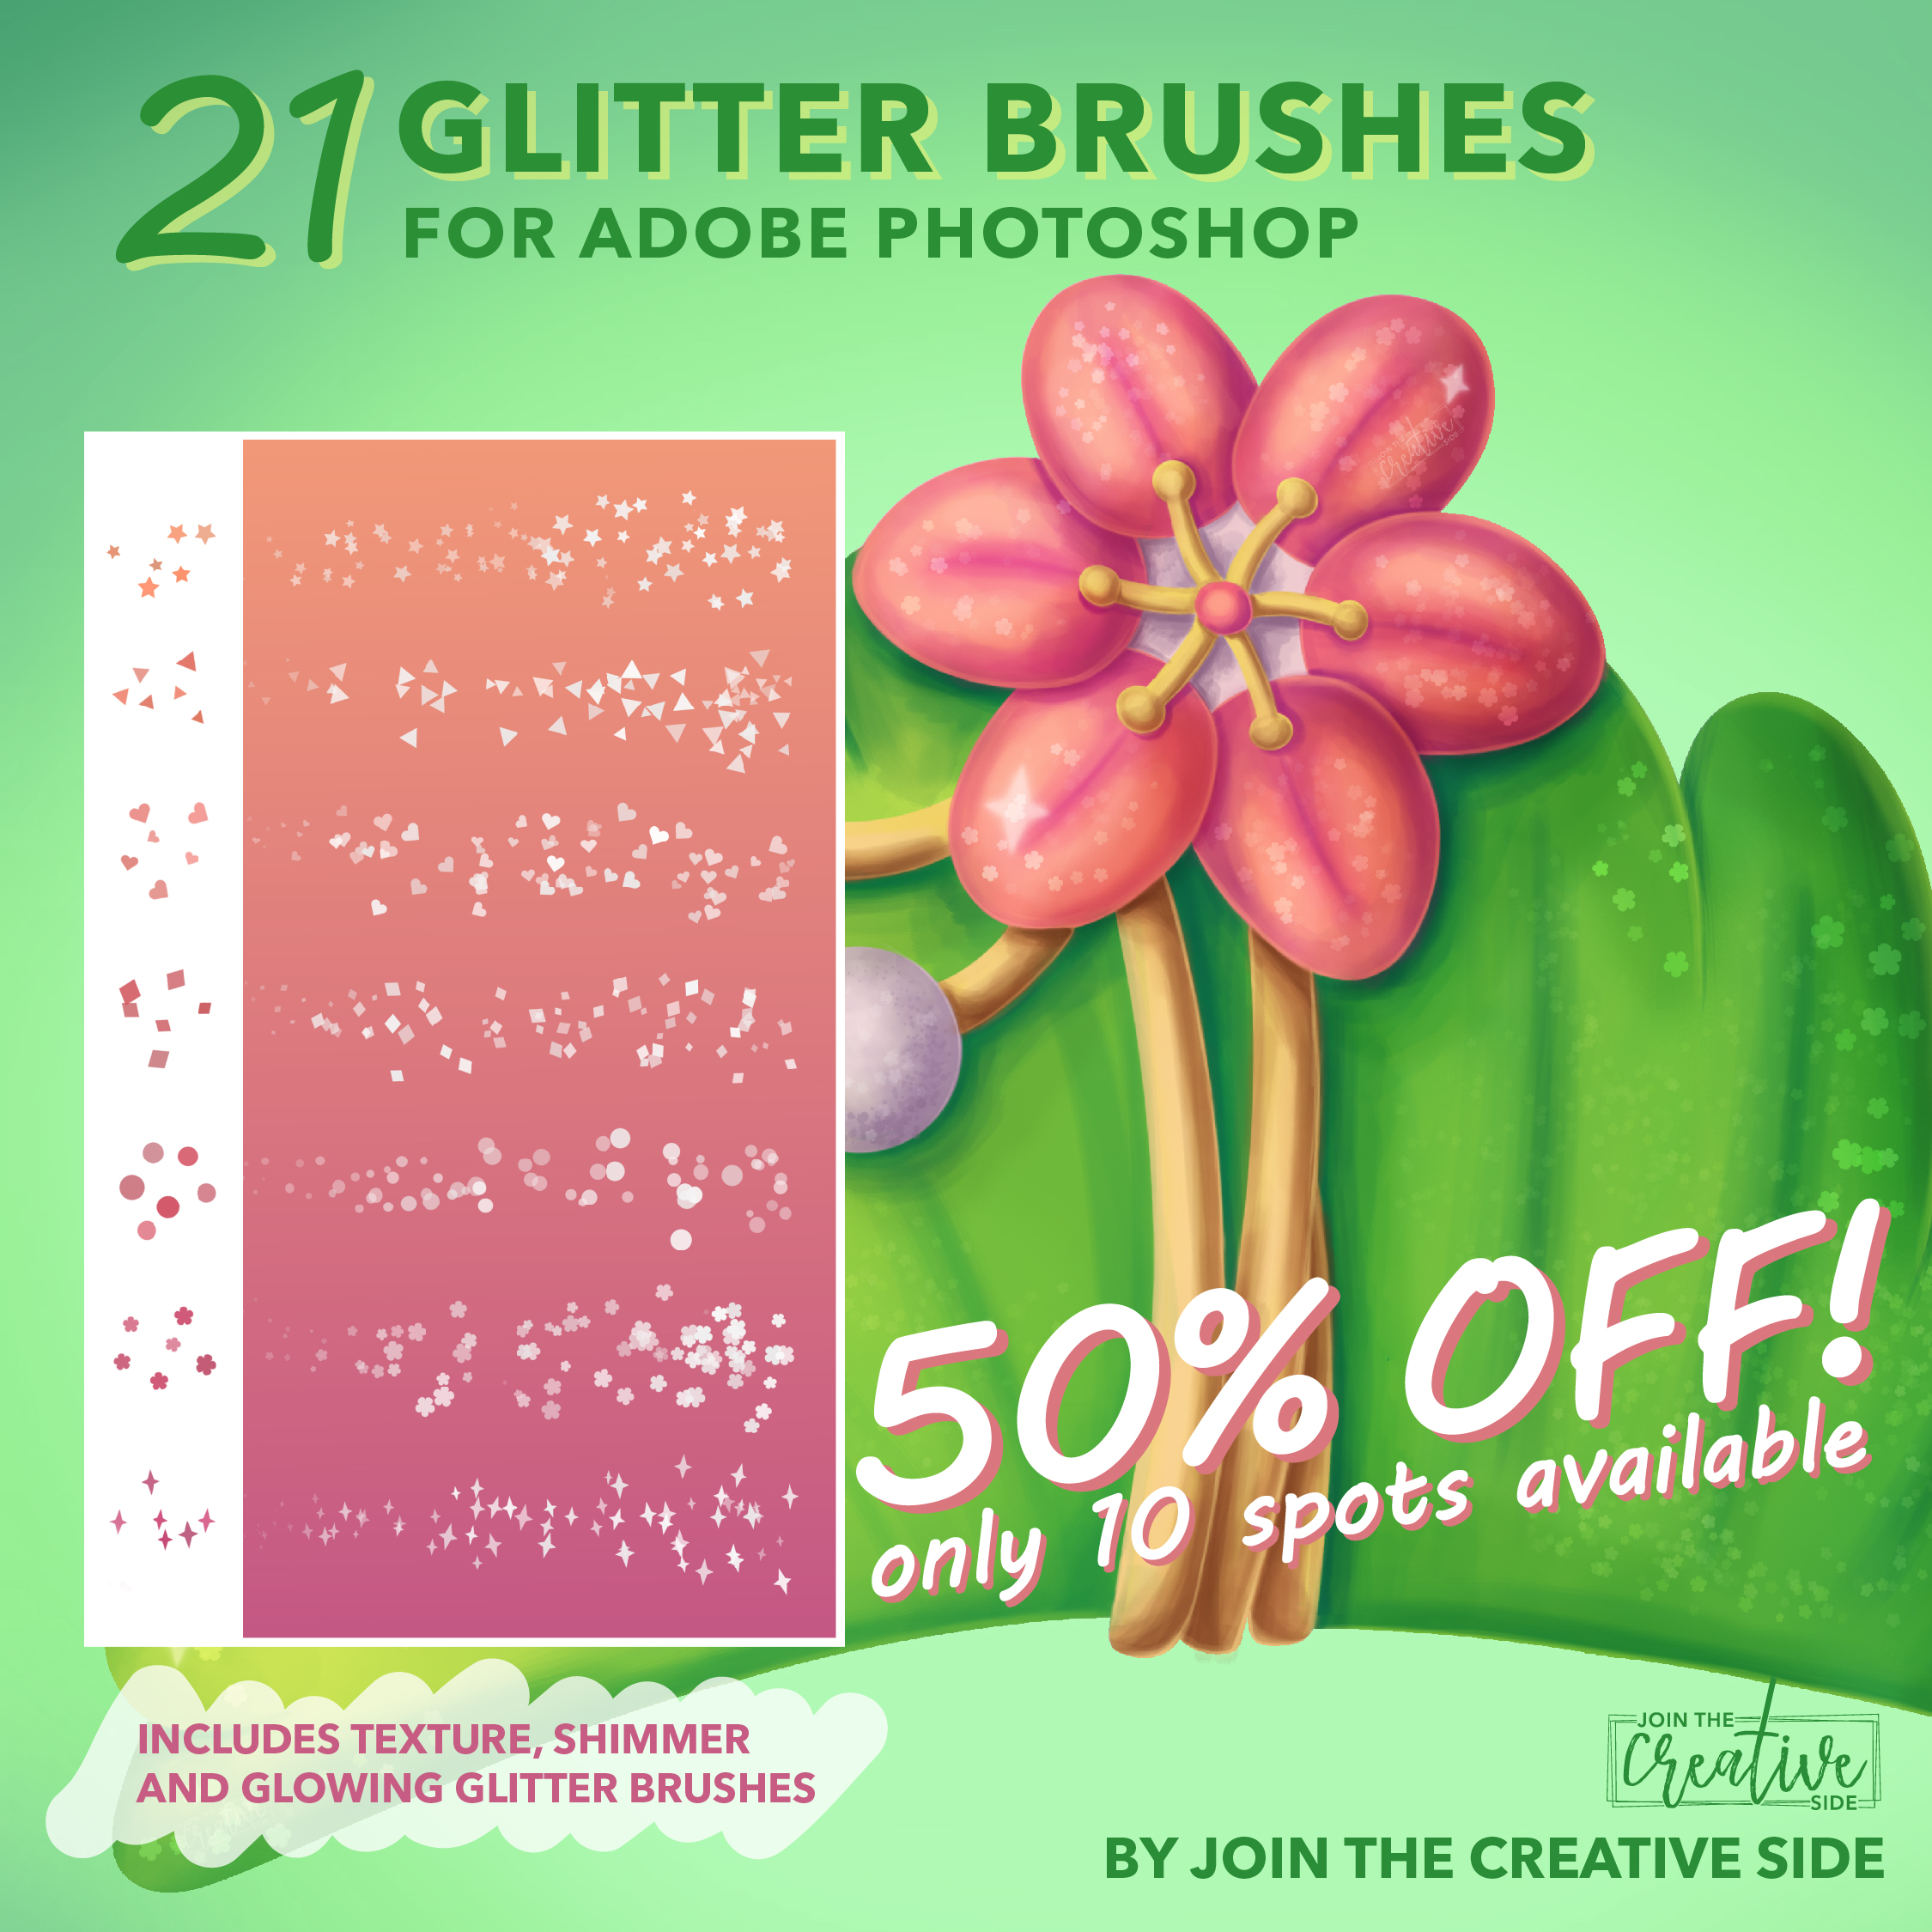 21 Glitter brushes for Adobe Photoshop by Join The Creative Side